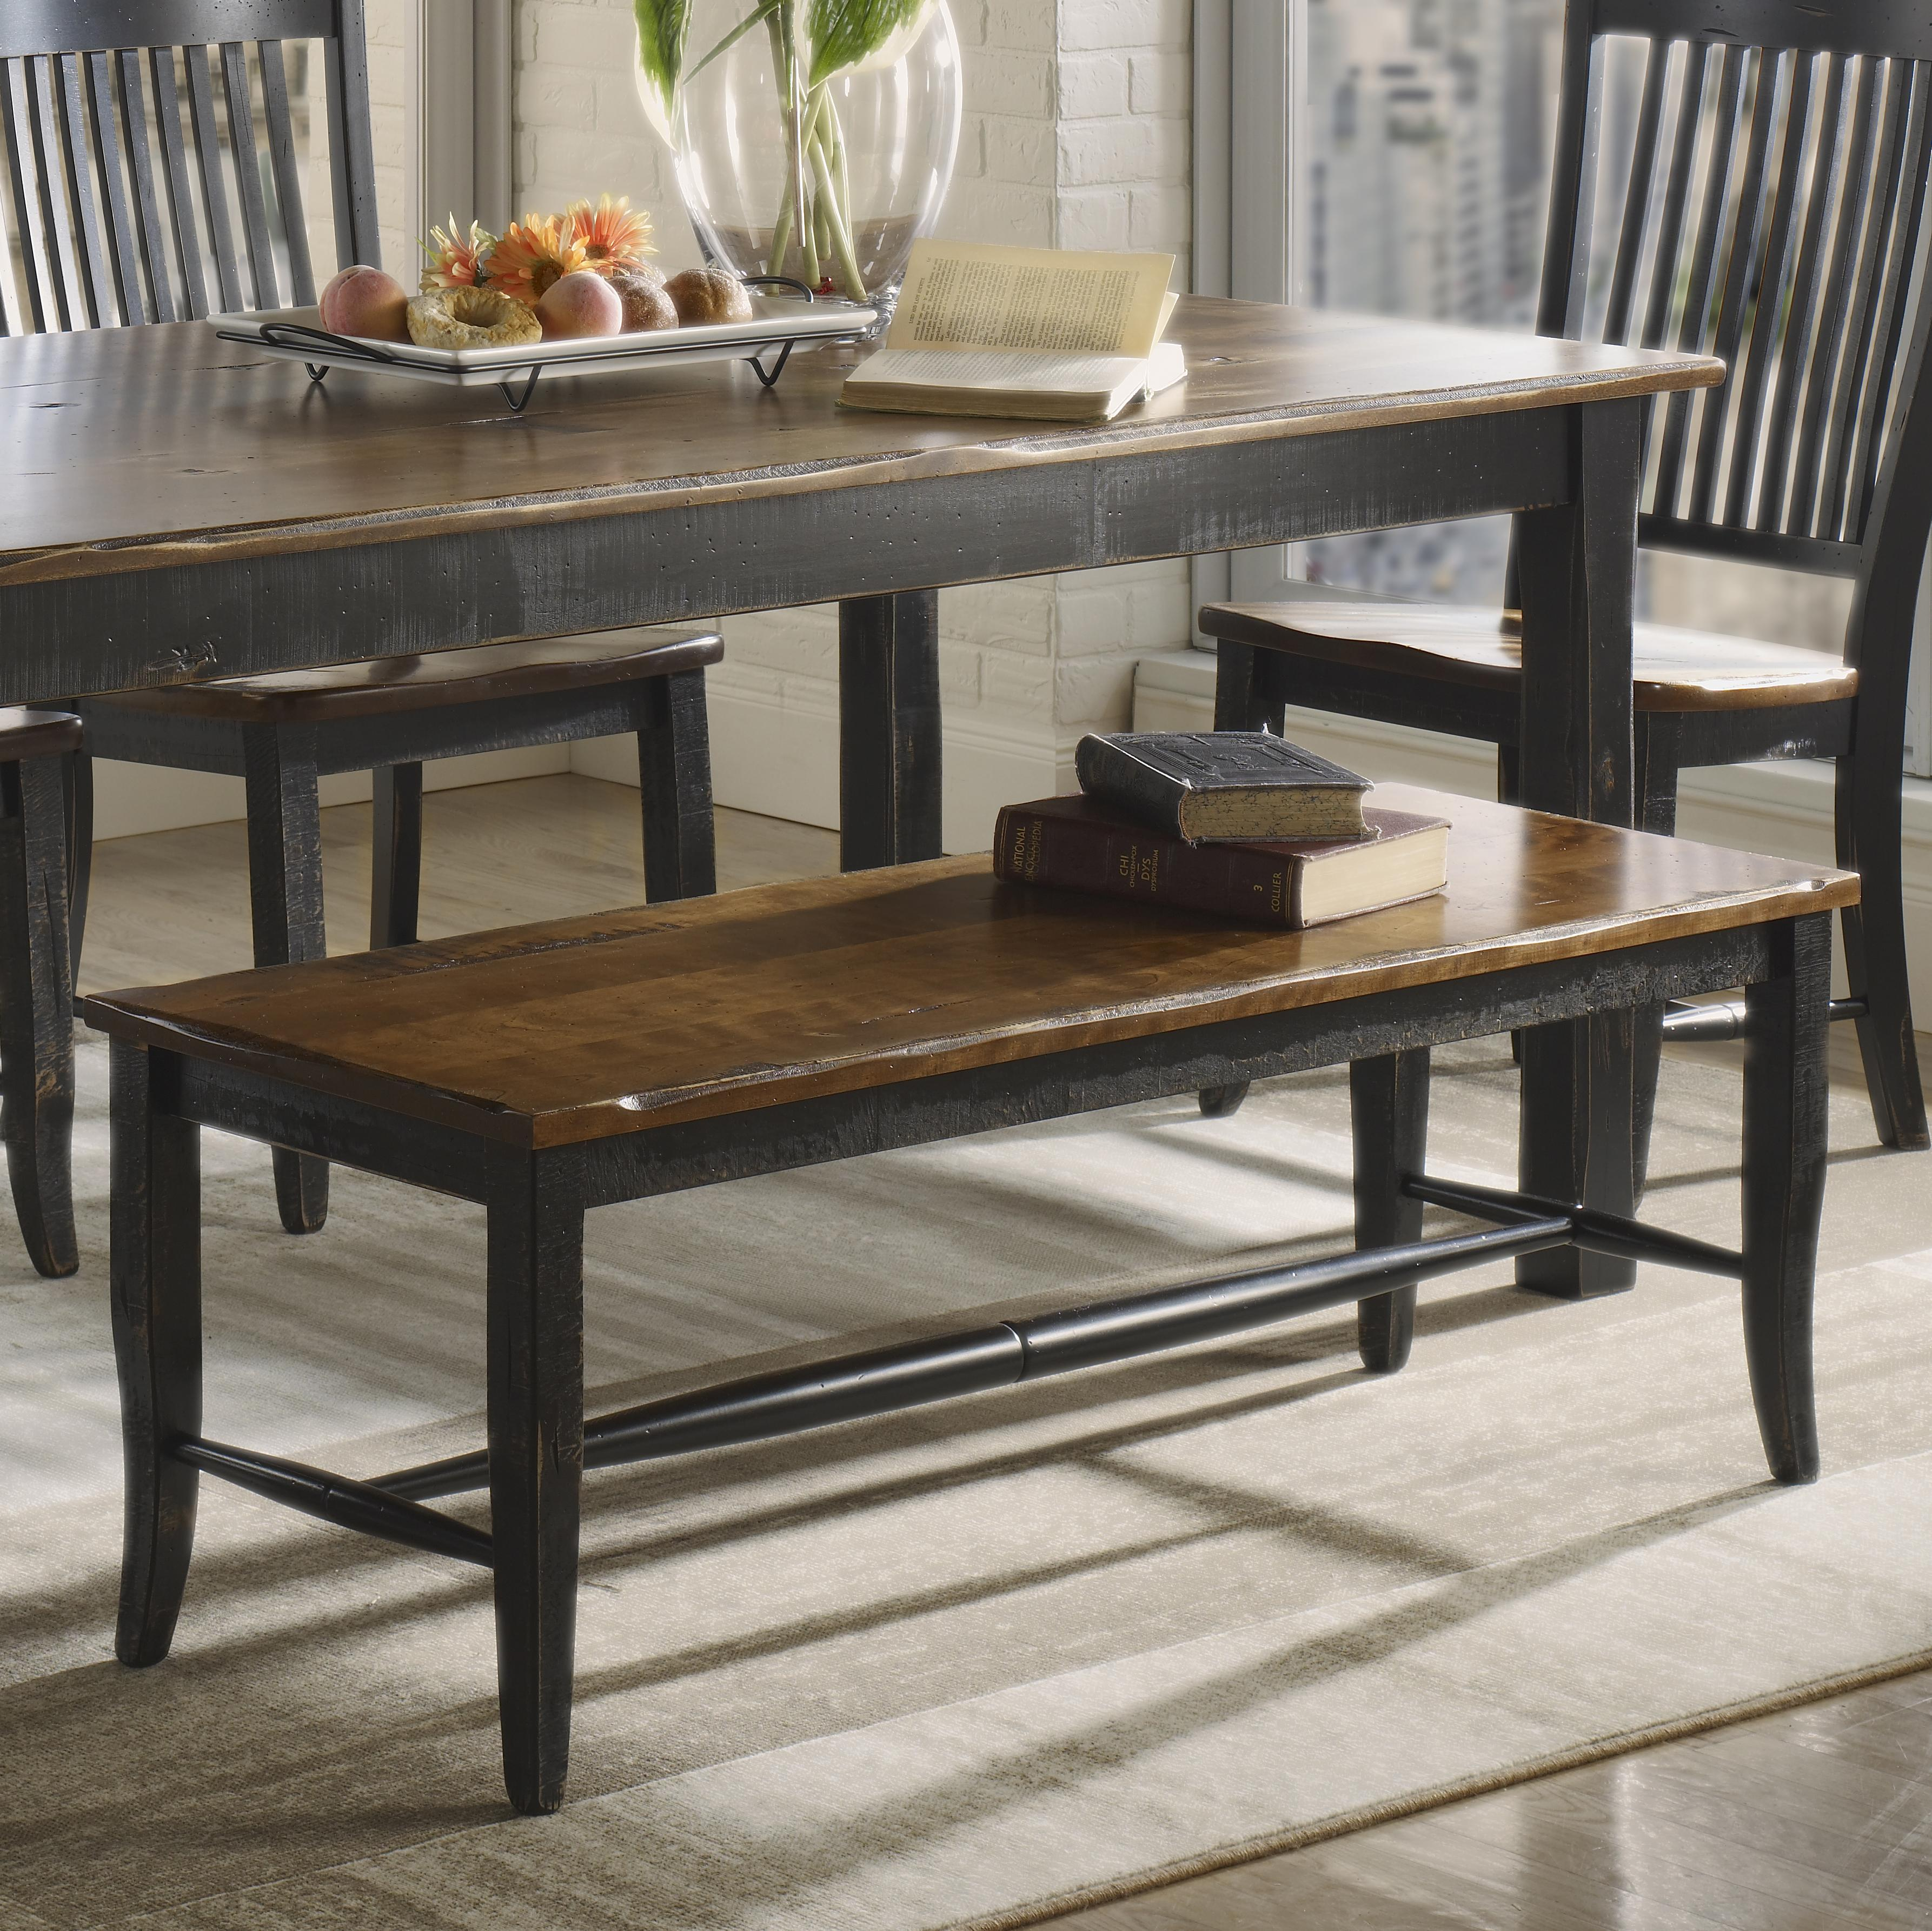 Champlain - Custom Dining <b>Customizable</b> Bench by Canadel at Dinette Depot